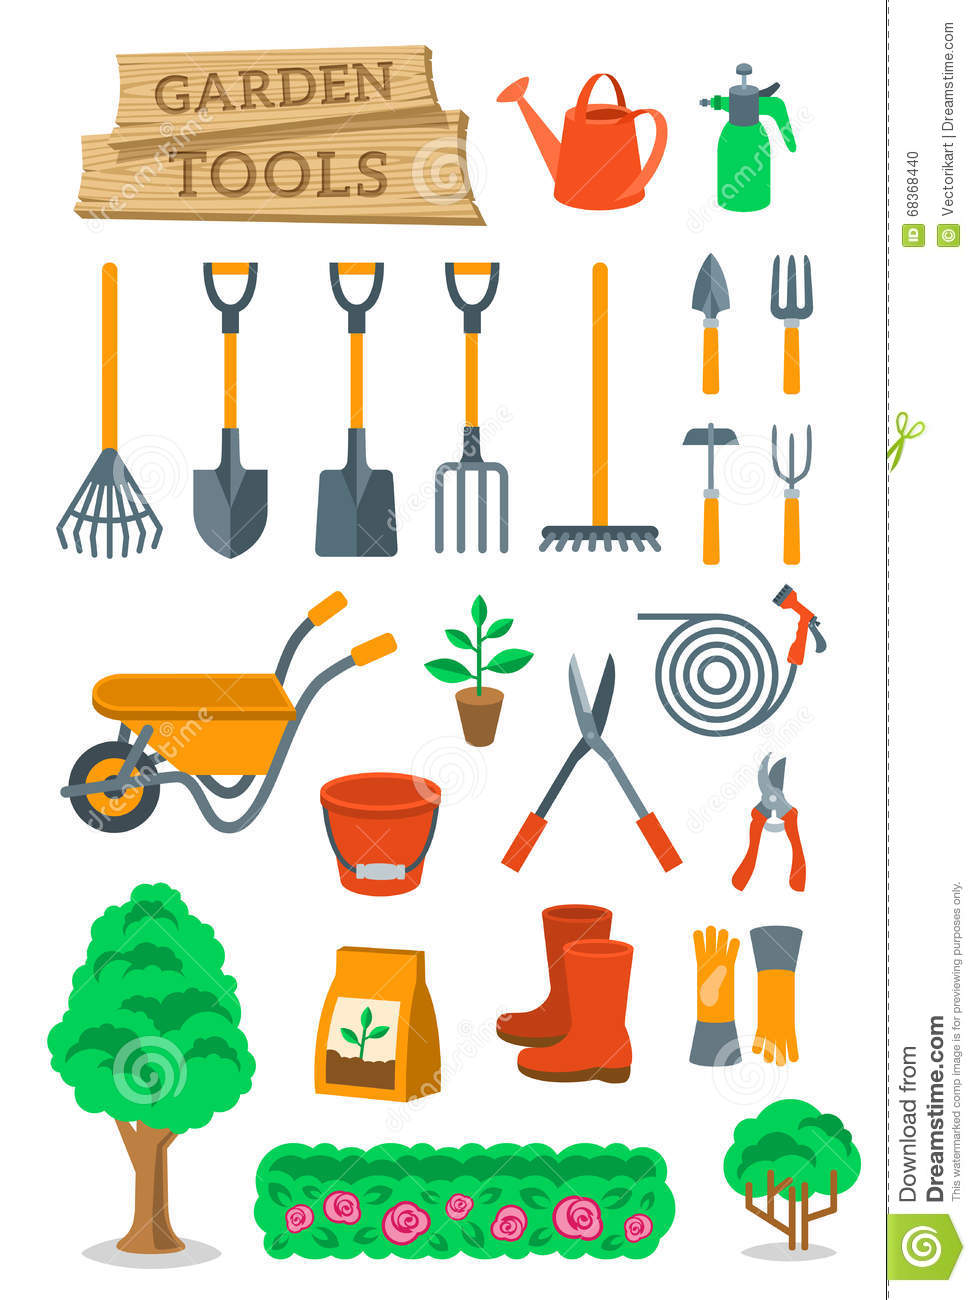 Farmer tools vector images galleries for Garden tools and implements